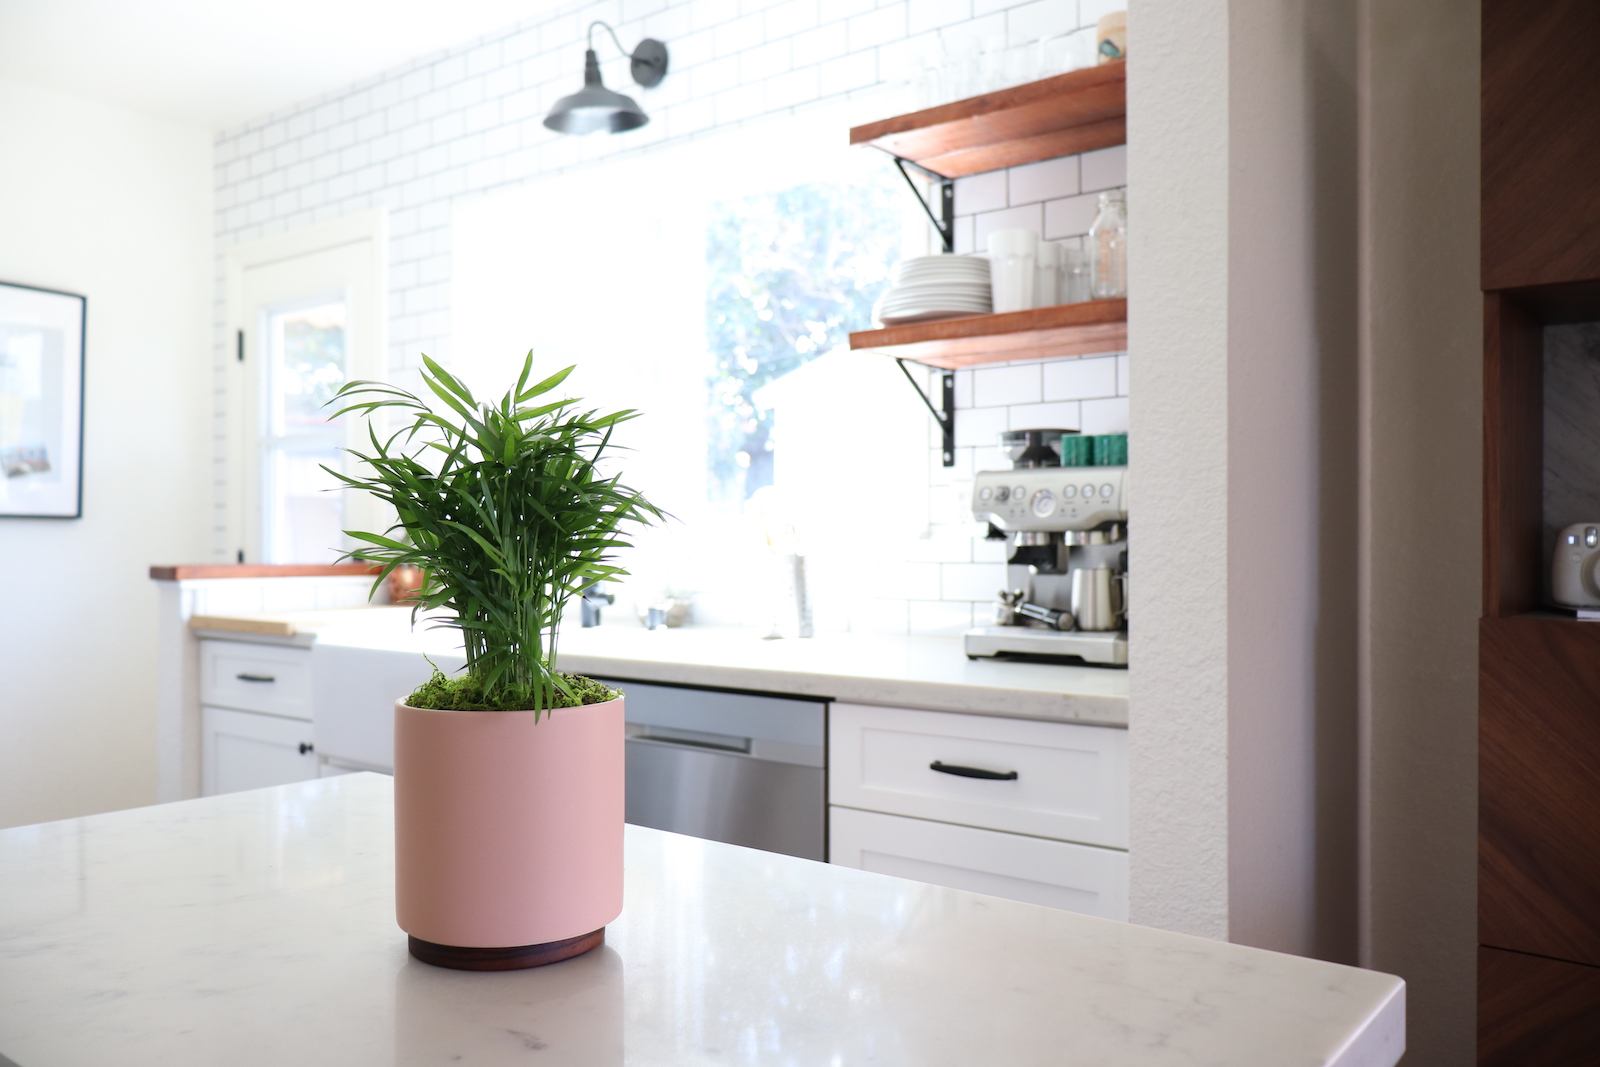 Parlor palms are perfect plants for the bathroom